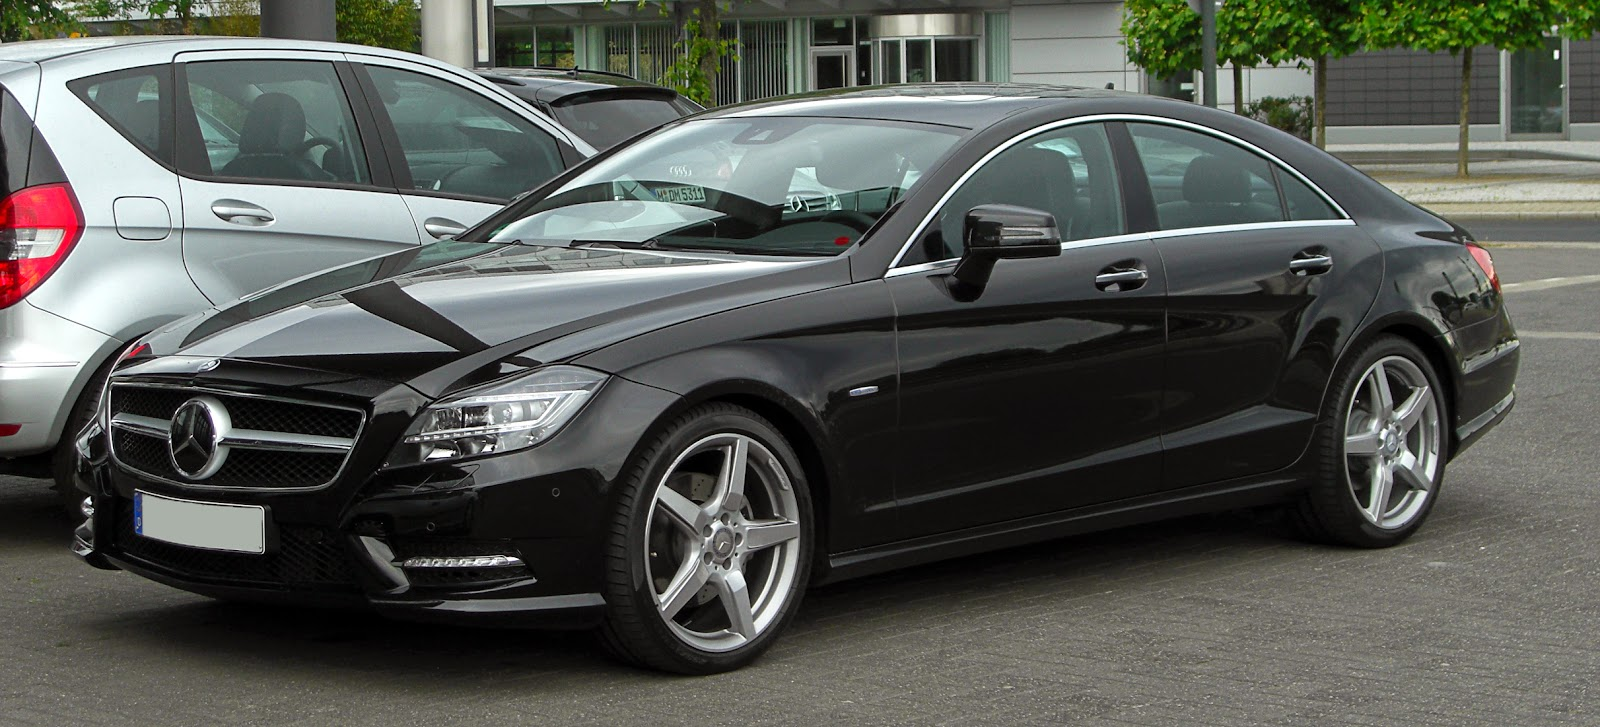 Mercedes-Benz CLS-Class (4-door coupé)